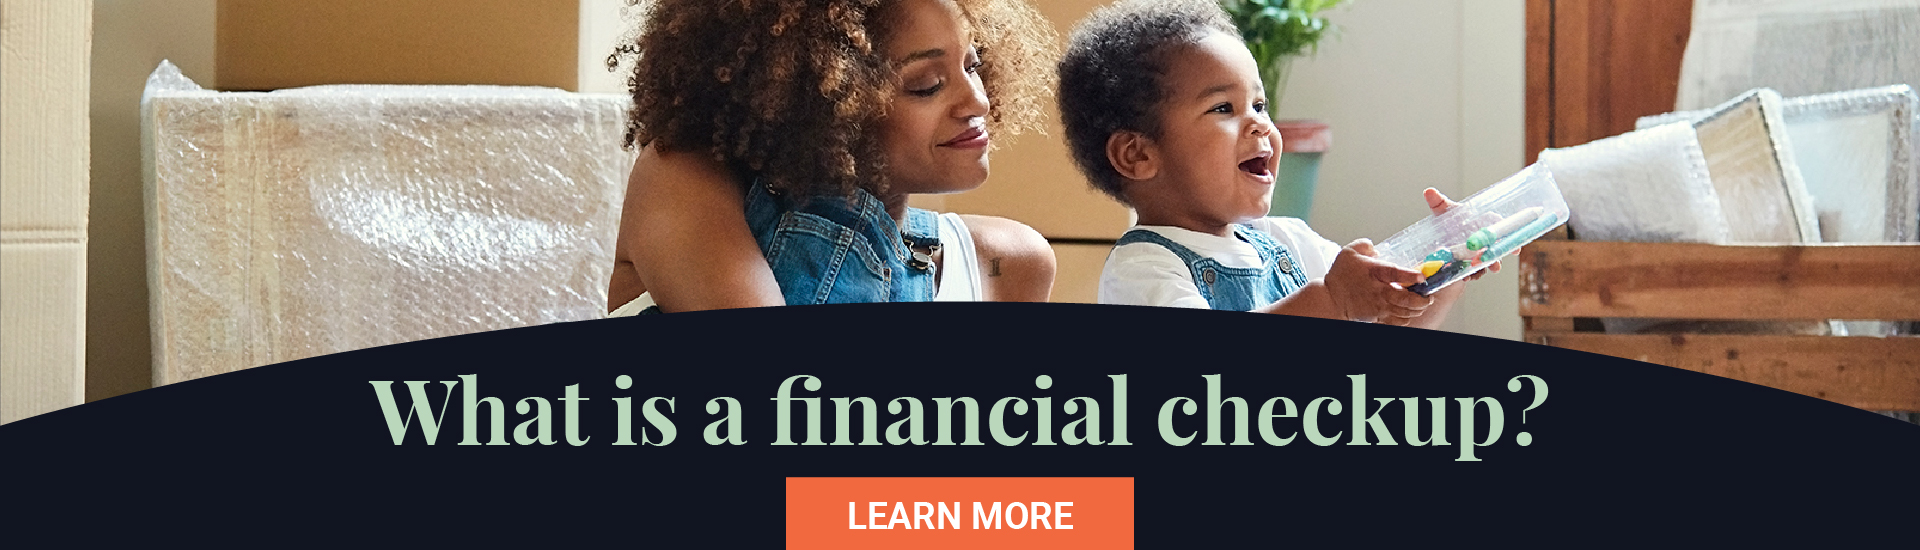 What is a financial checkup?